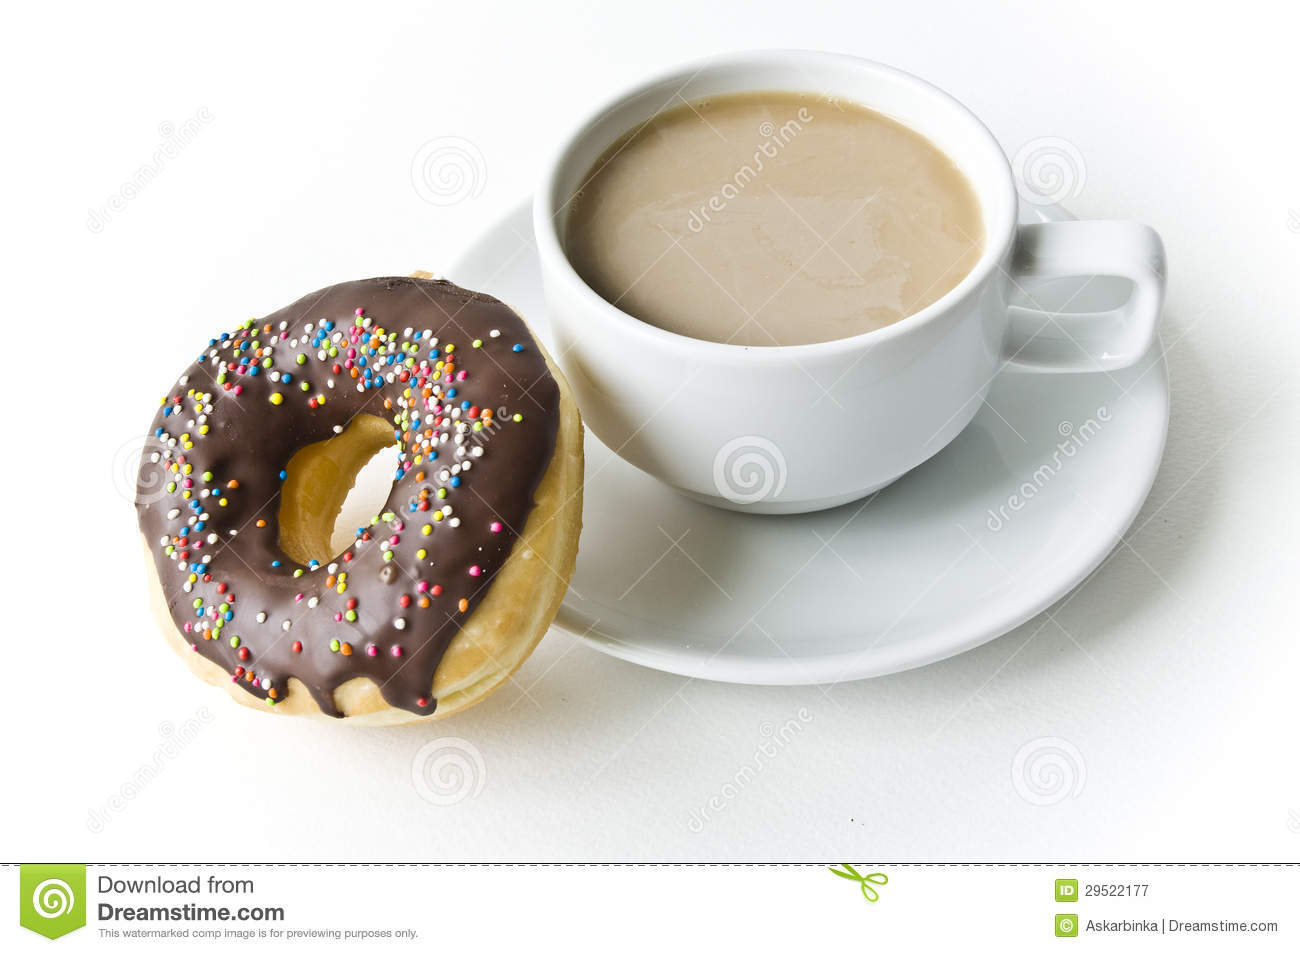 Donuts And Coffee Cup Royalty Free Stock Photography - Image: 29522177